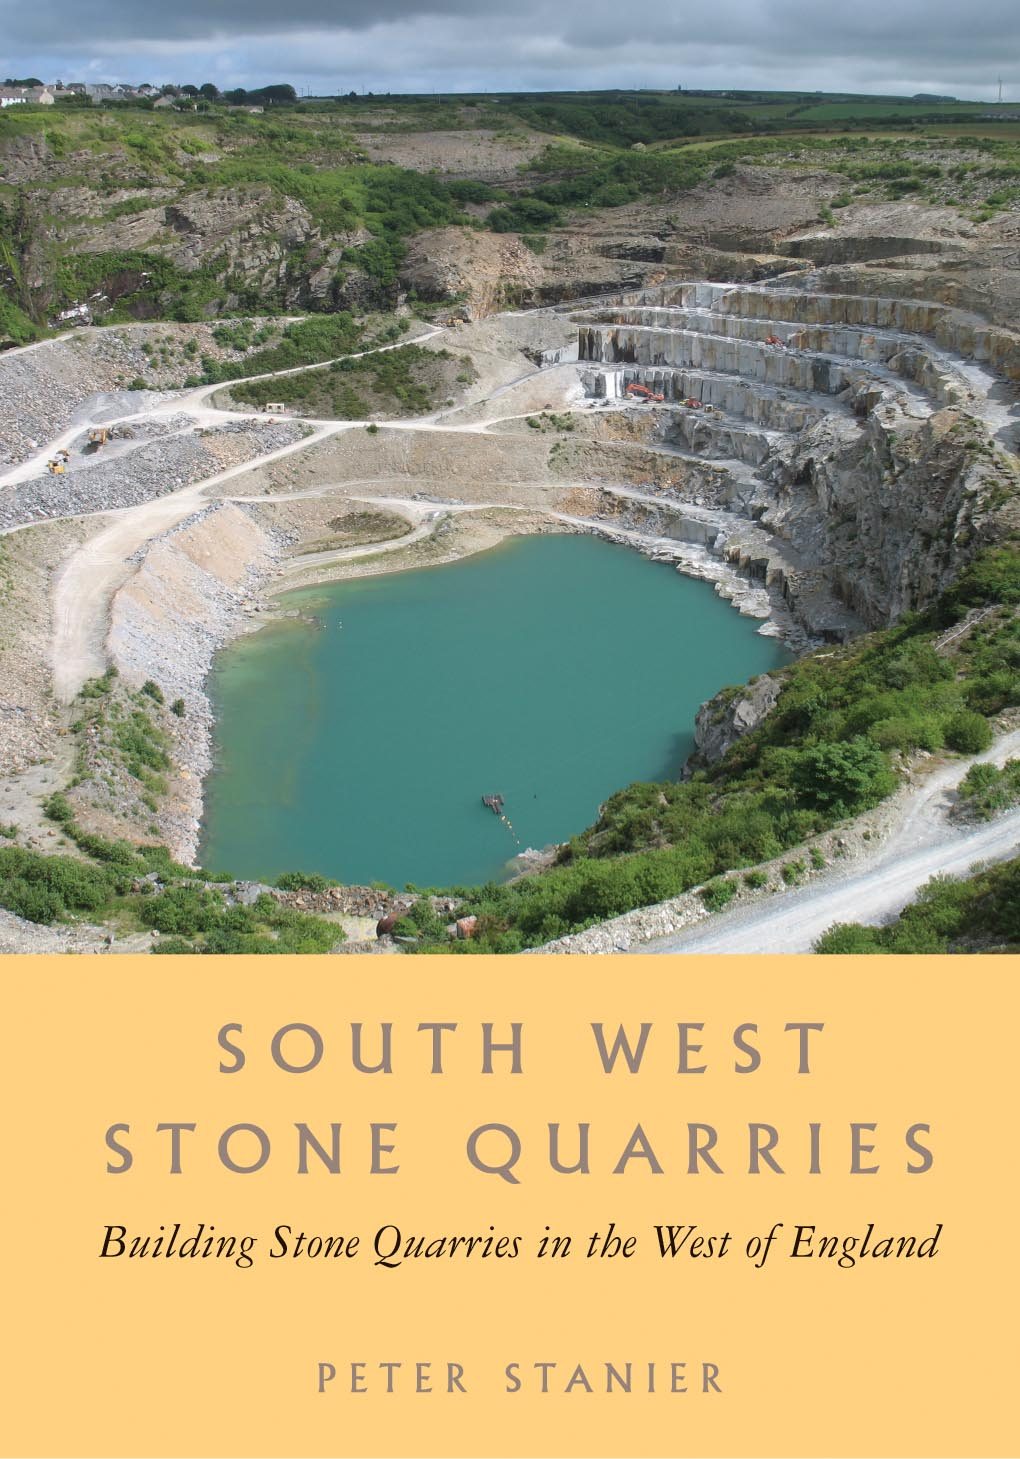 SW Stone Quarries